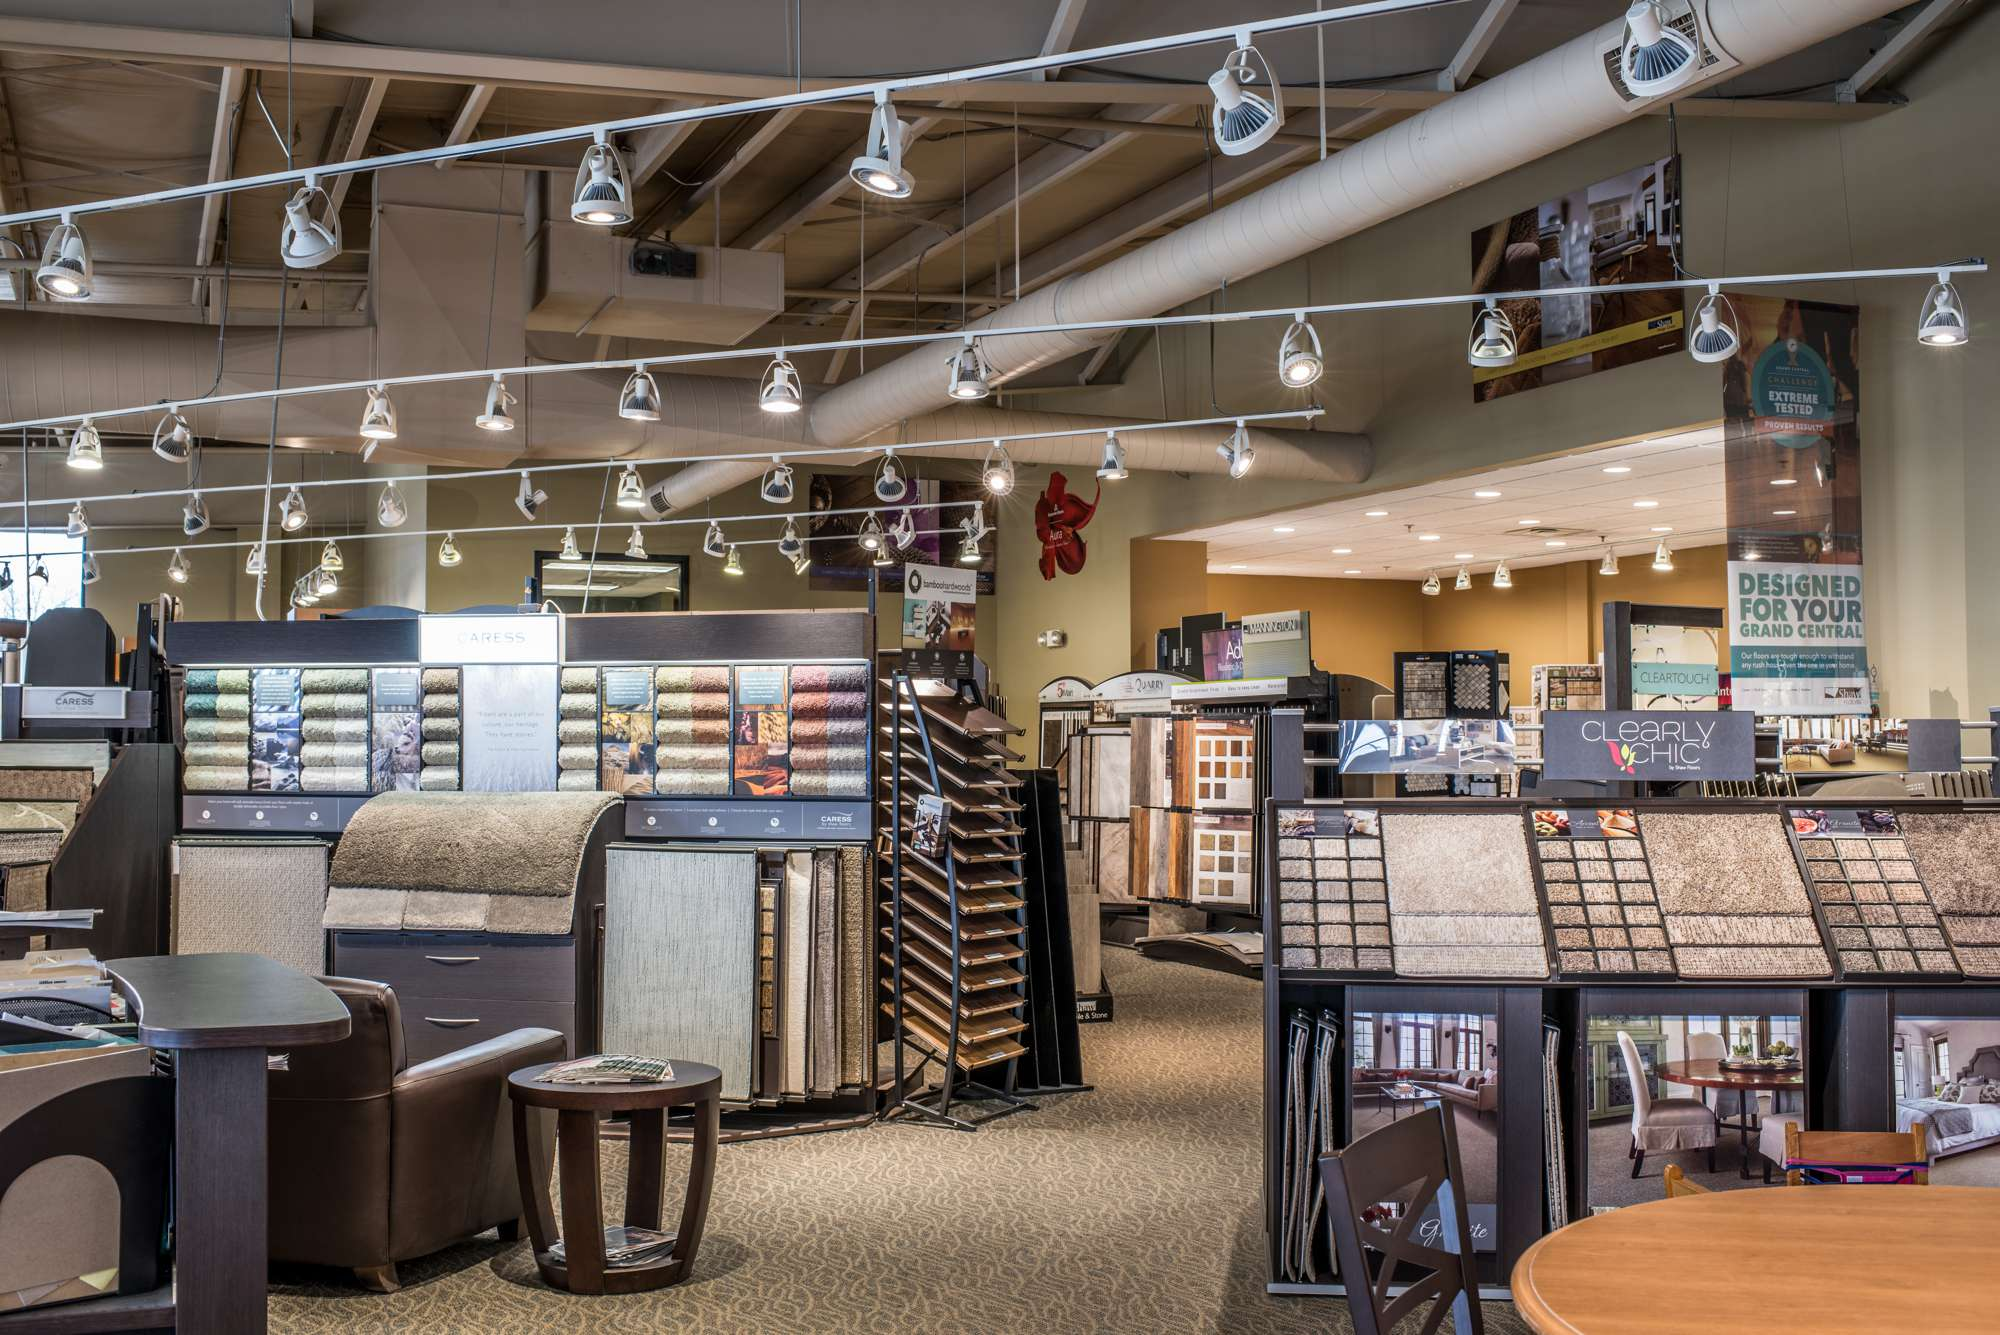 Carpet in Columbia, MO? Look no further than our showroom